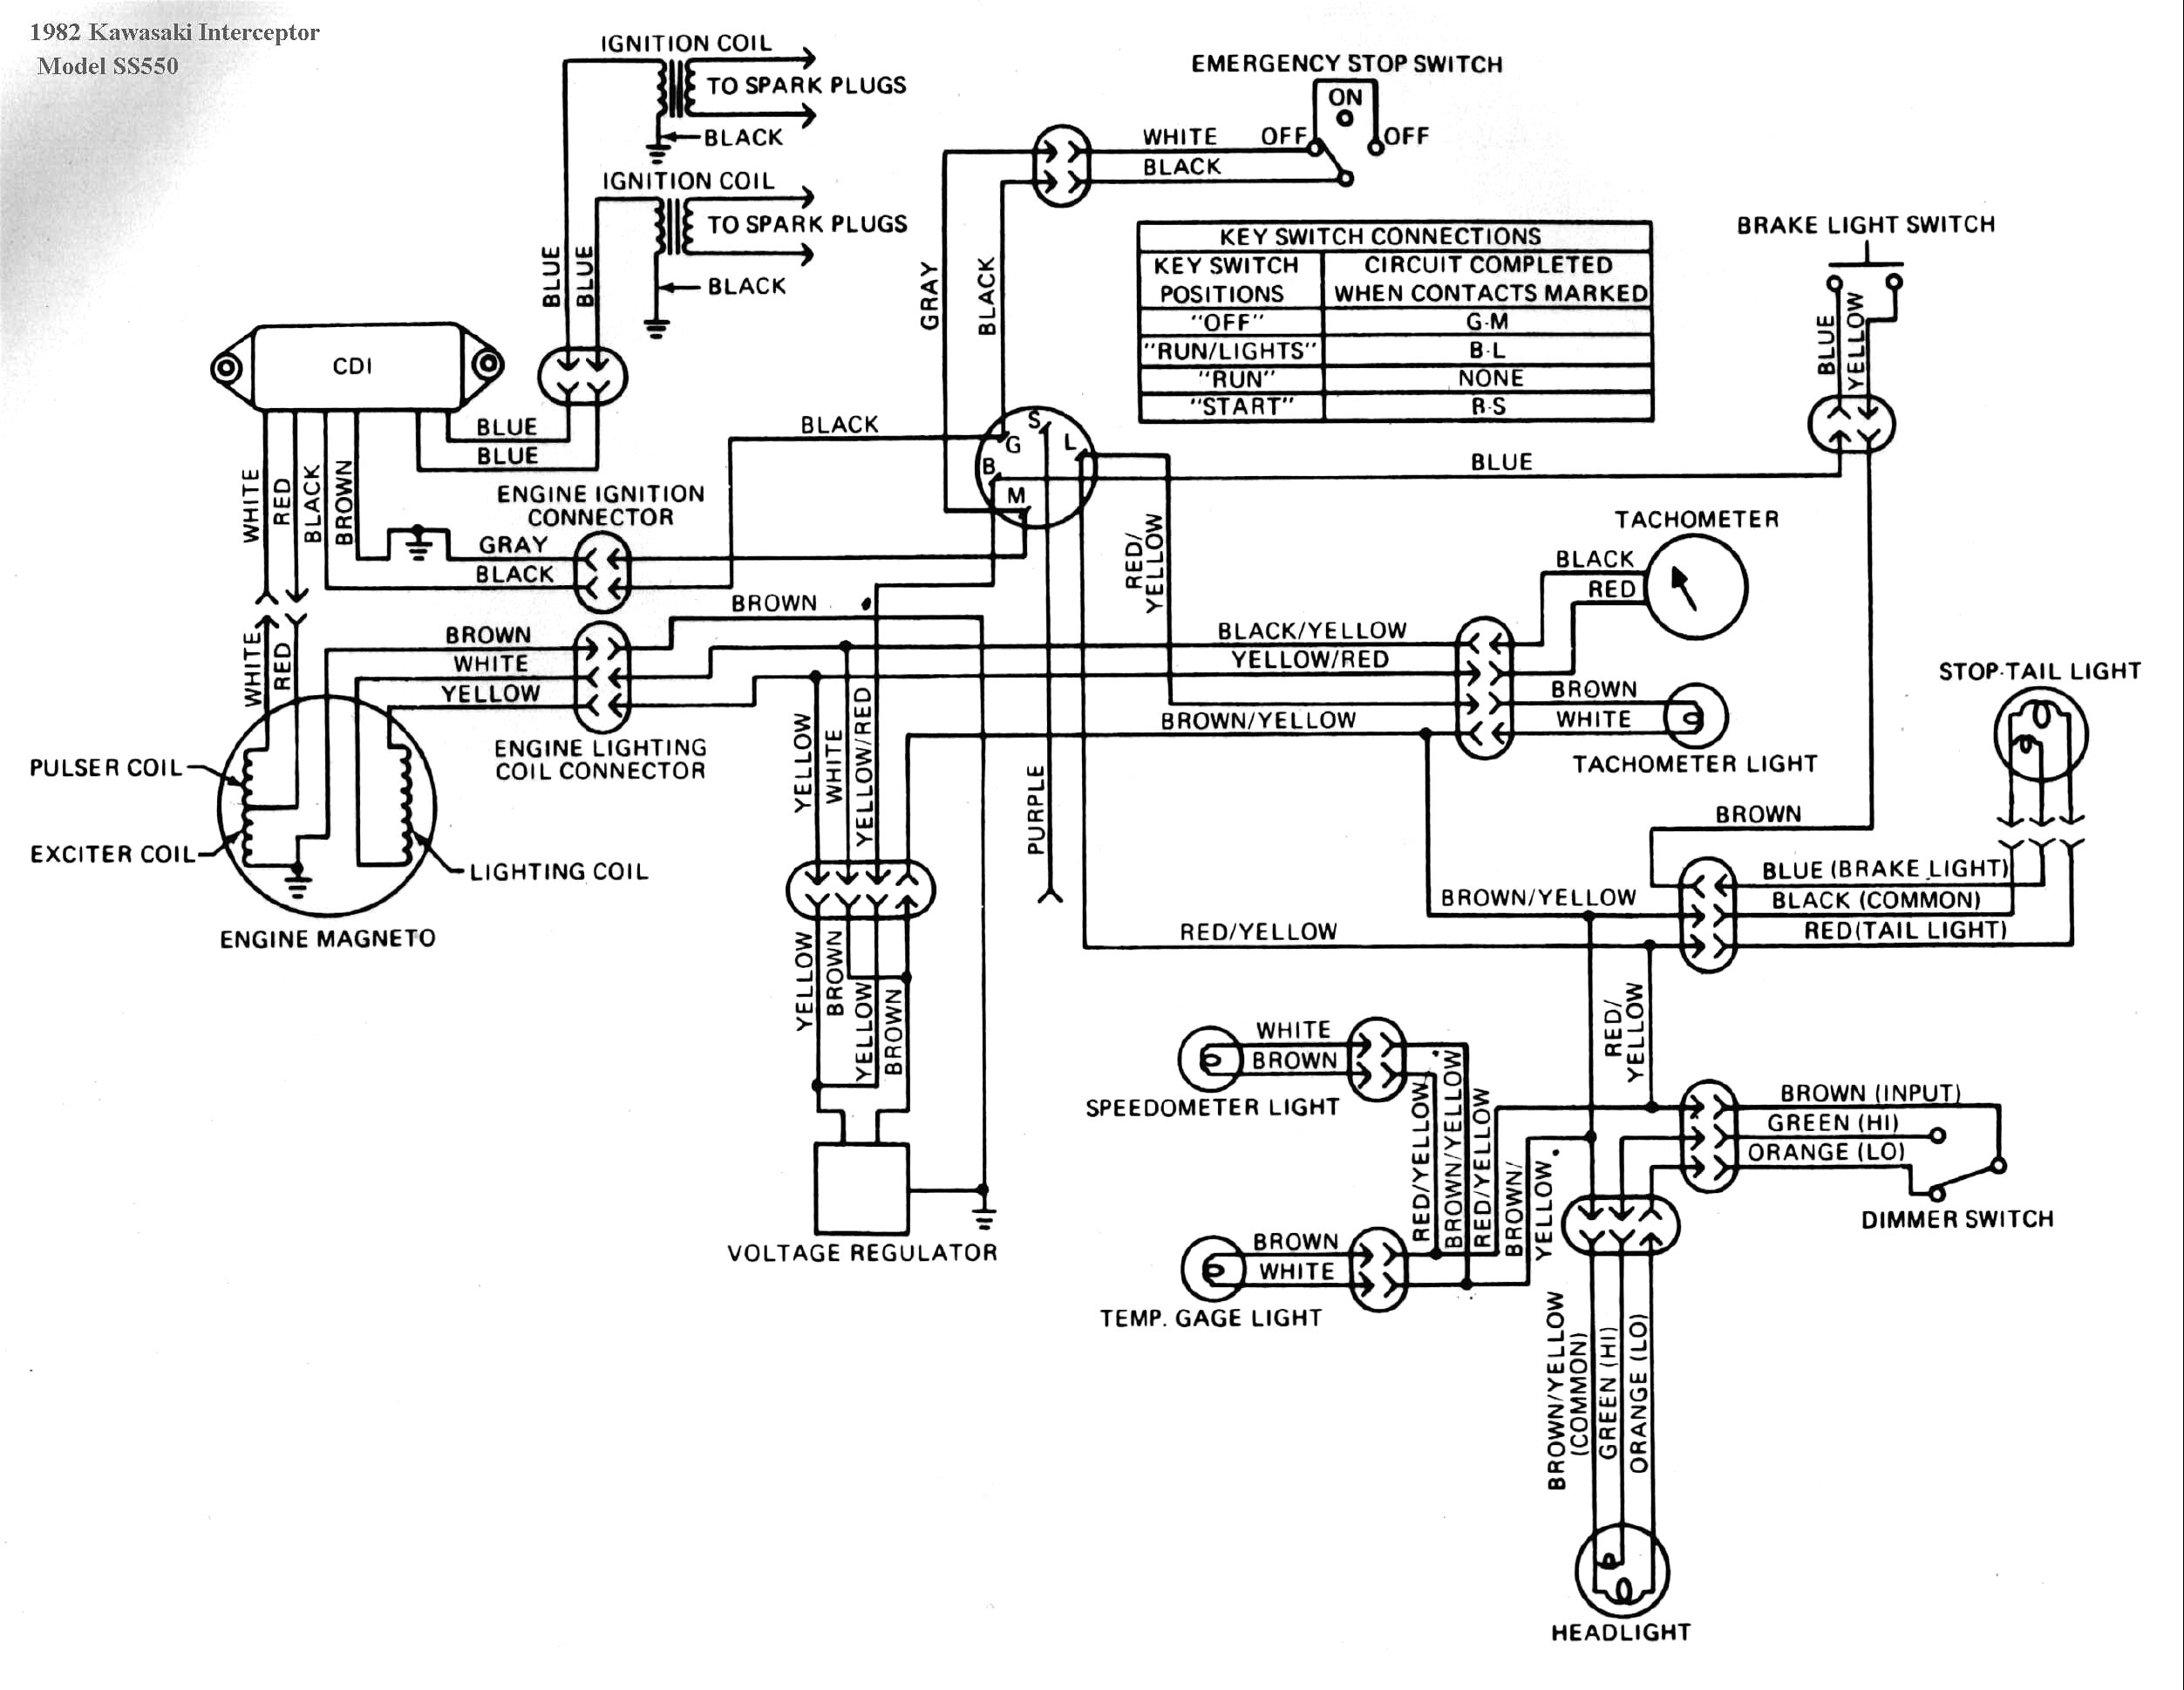 Wiring Diagram For Kawasaki Mule 550 - Wiring Diagram And stale-city-a -  stale-city-a.rennella.it rennella.it